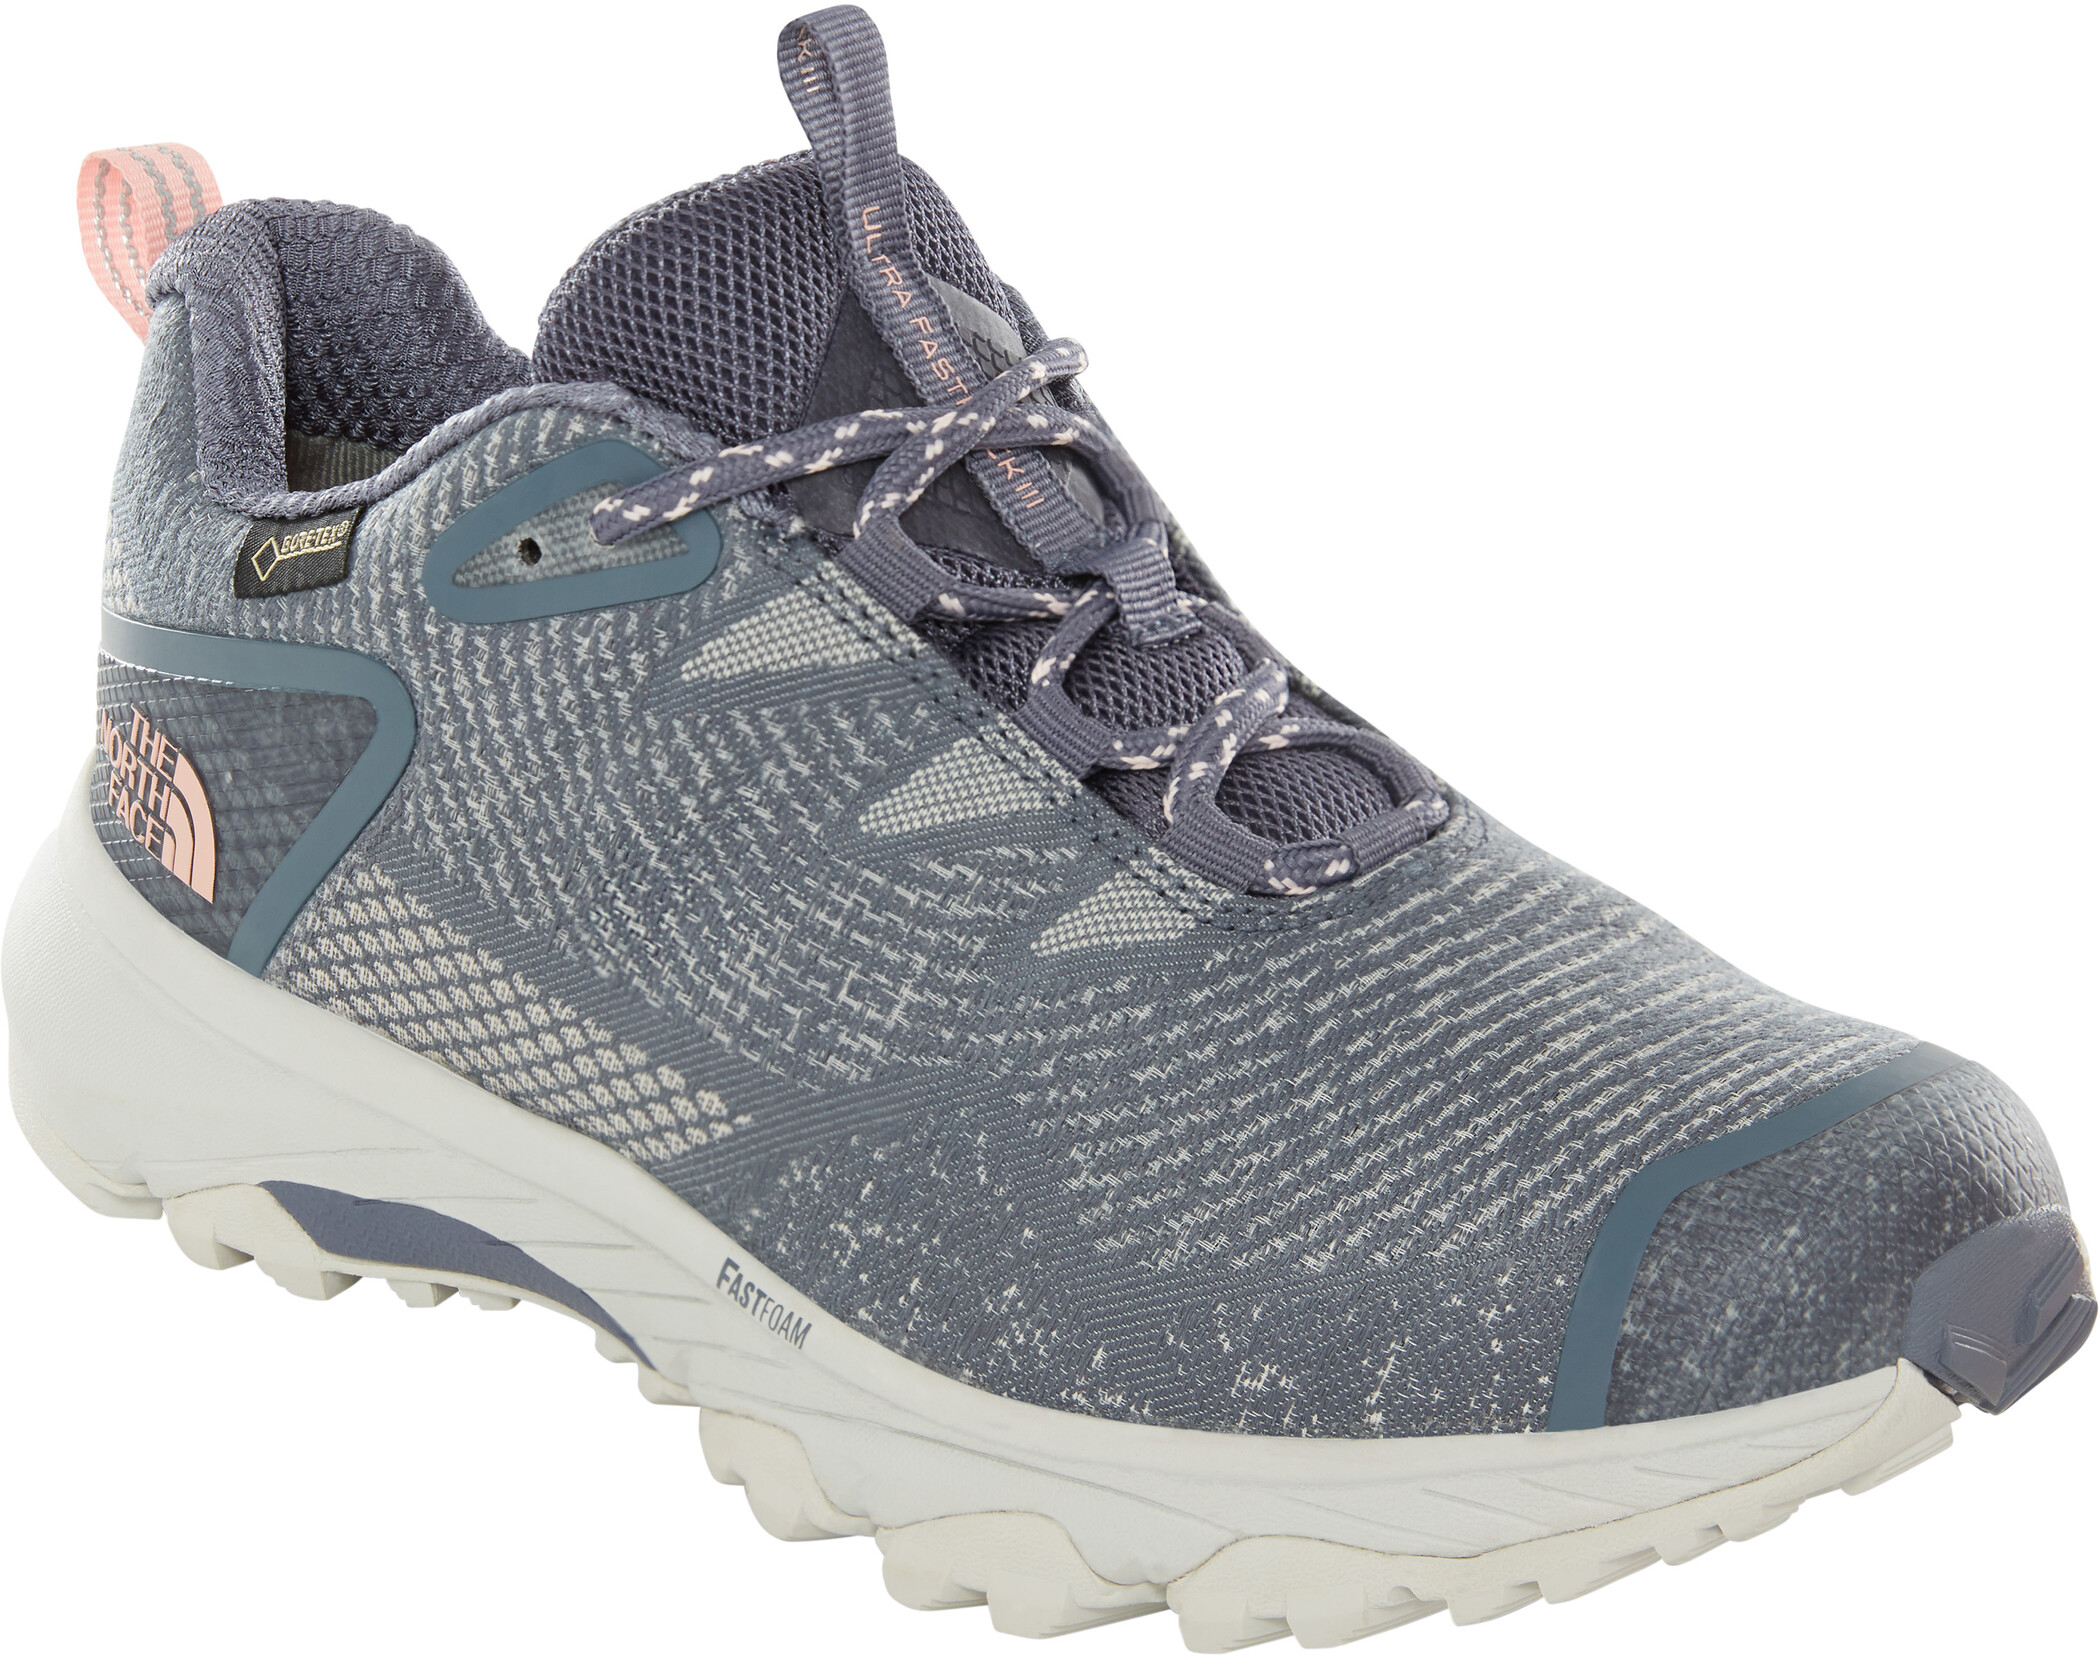 The North Face Ultra Fastpack III GTX Woven Shoes Dam grisaille greypink salt